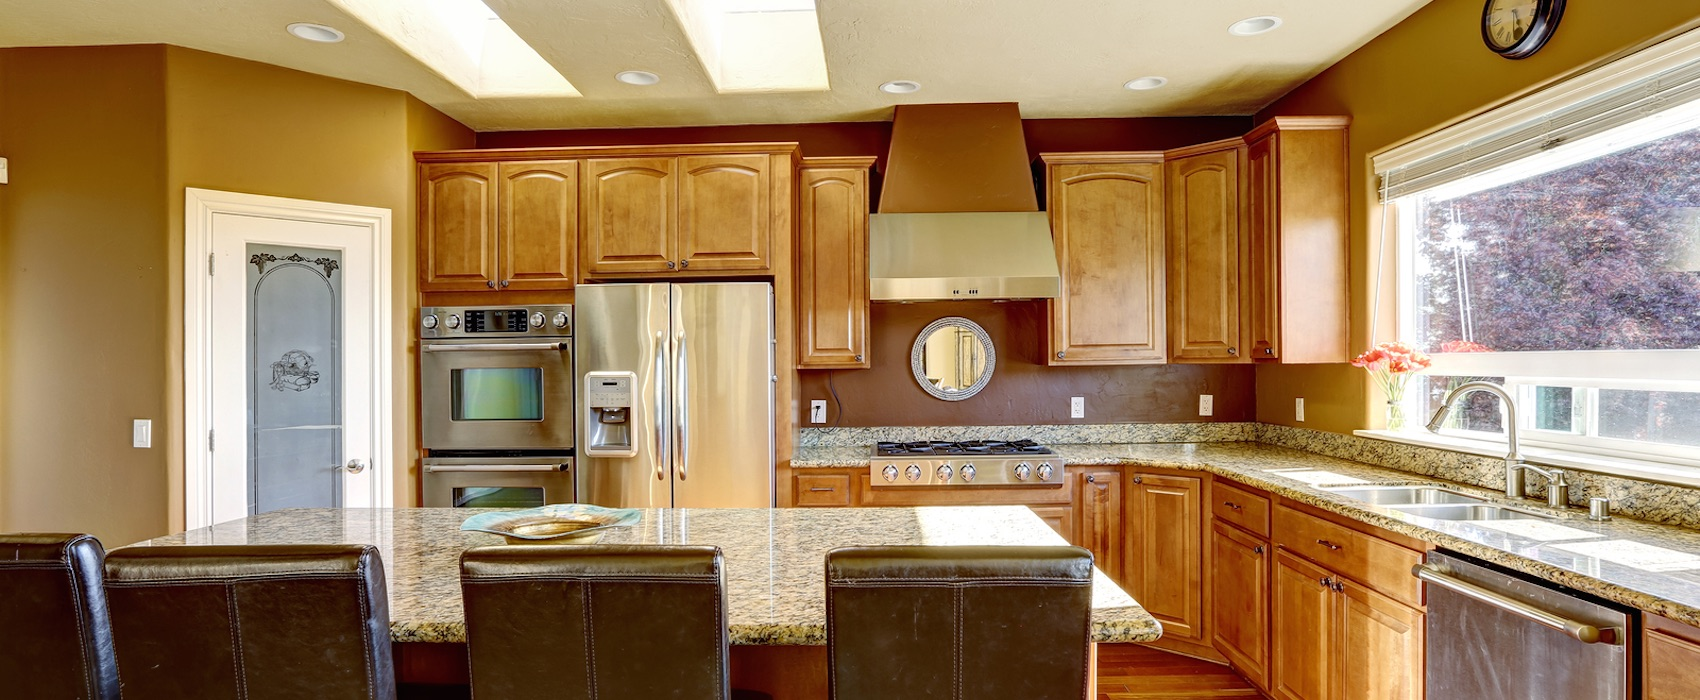 Kitchen Remodeling Denver Co